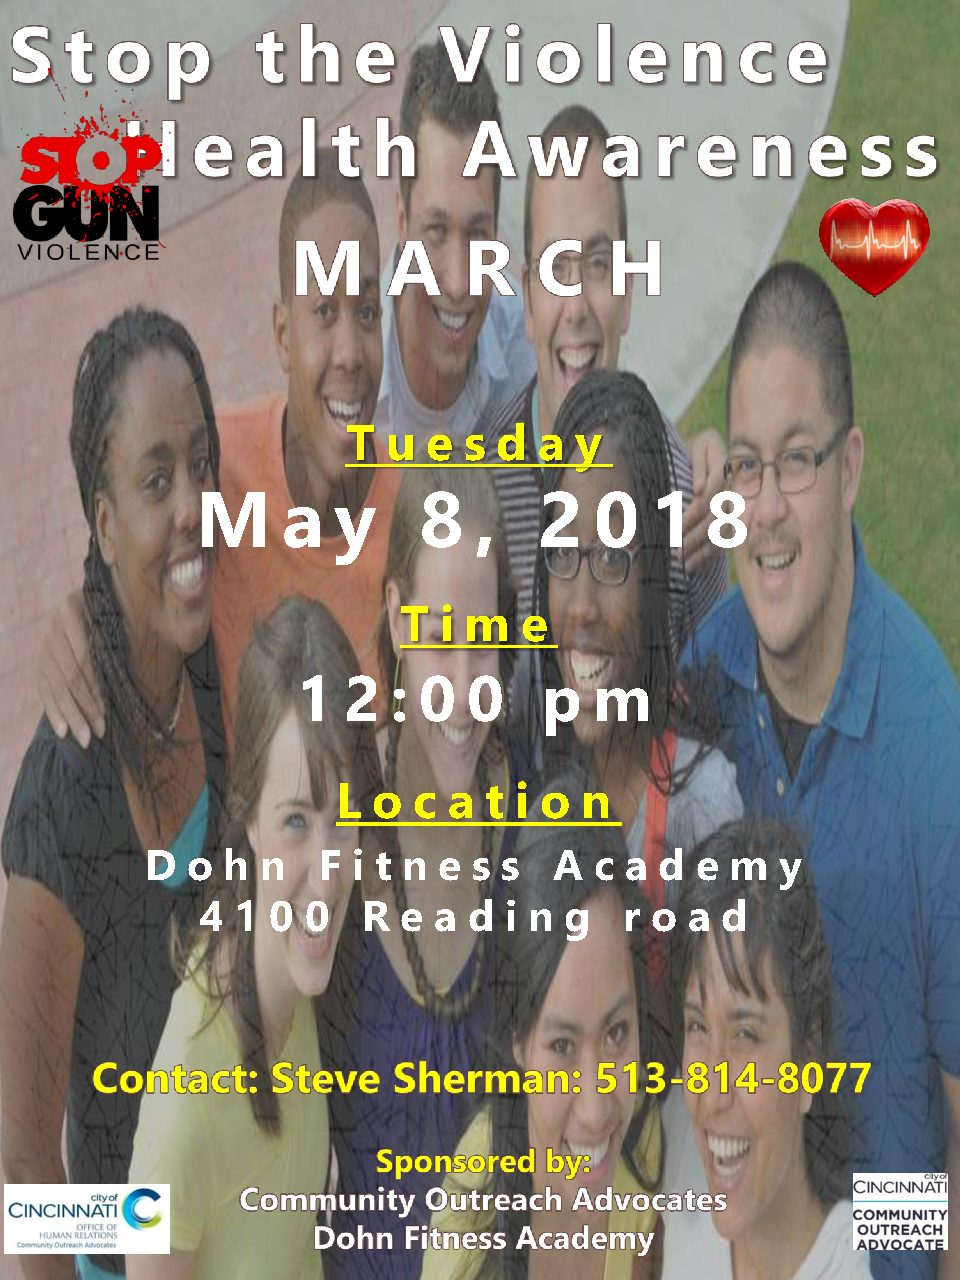 Dohn co-sponsors Stop the Violence March